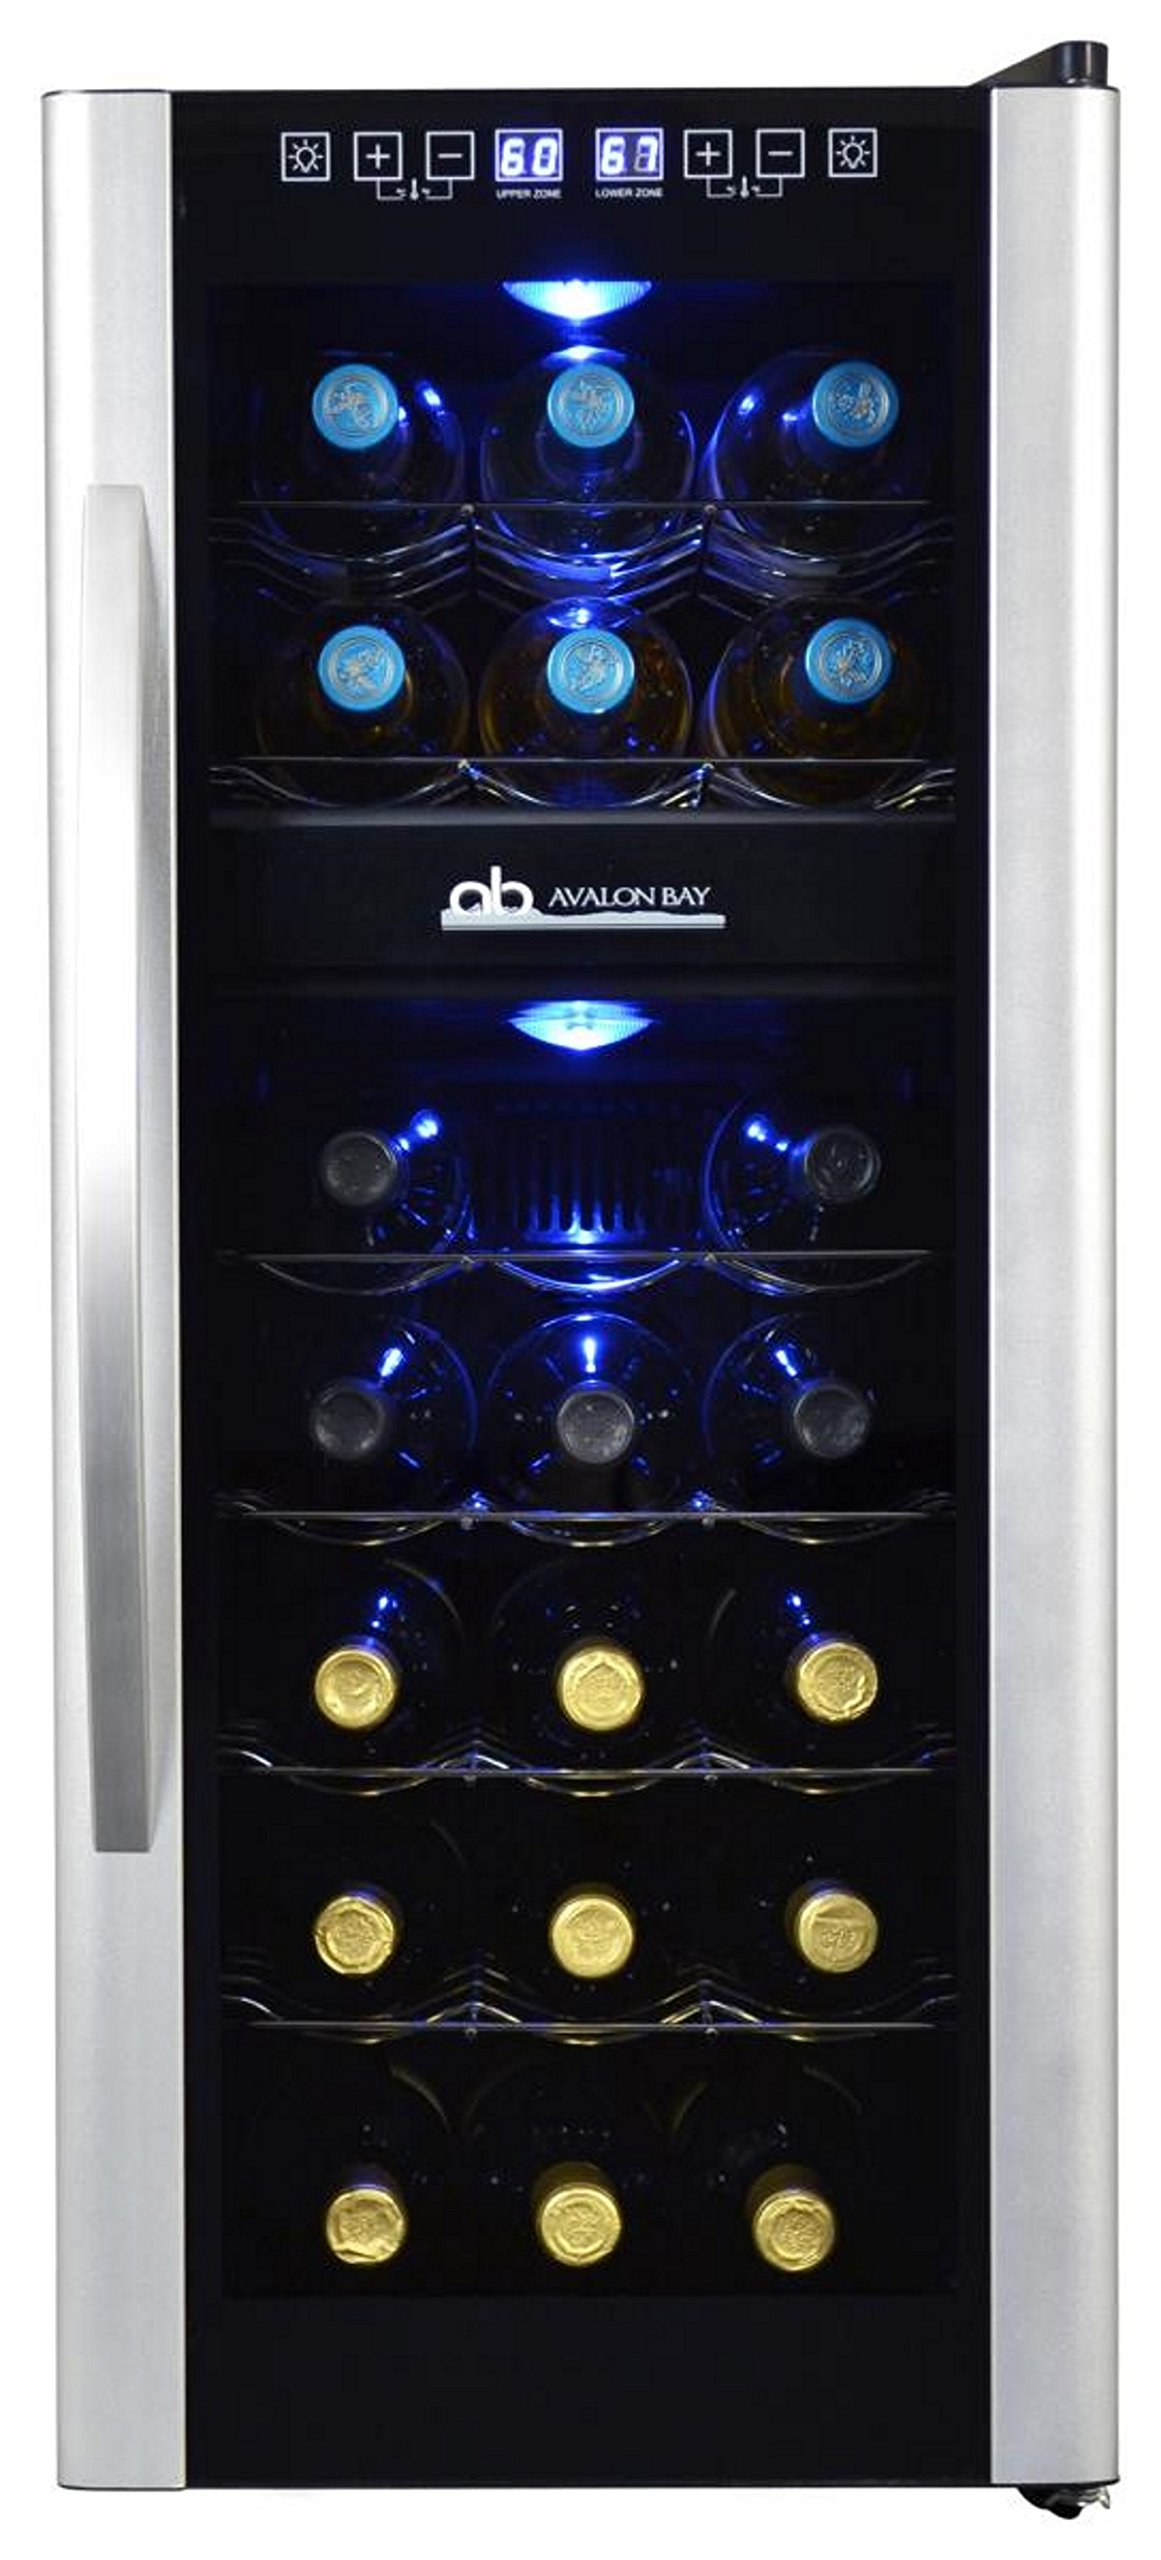 Avalon Bay AB-WINE21DS 21 Bottle Dual Zone Wine Cooler by Avalon Bay (Image #4)